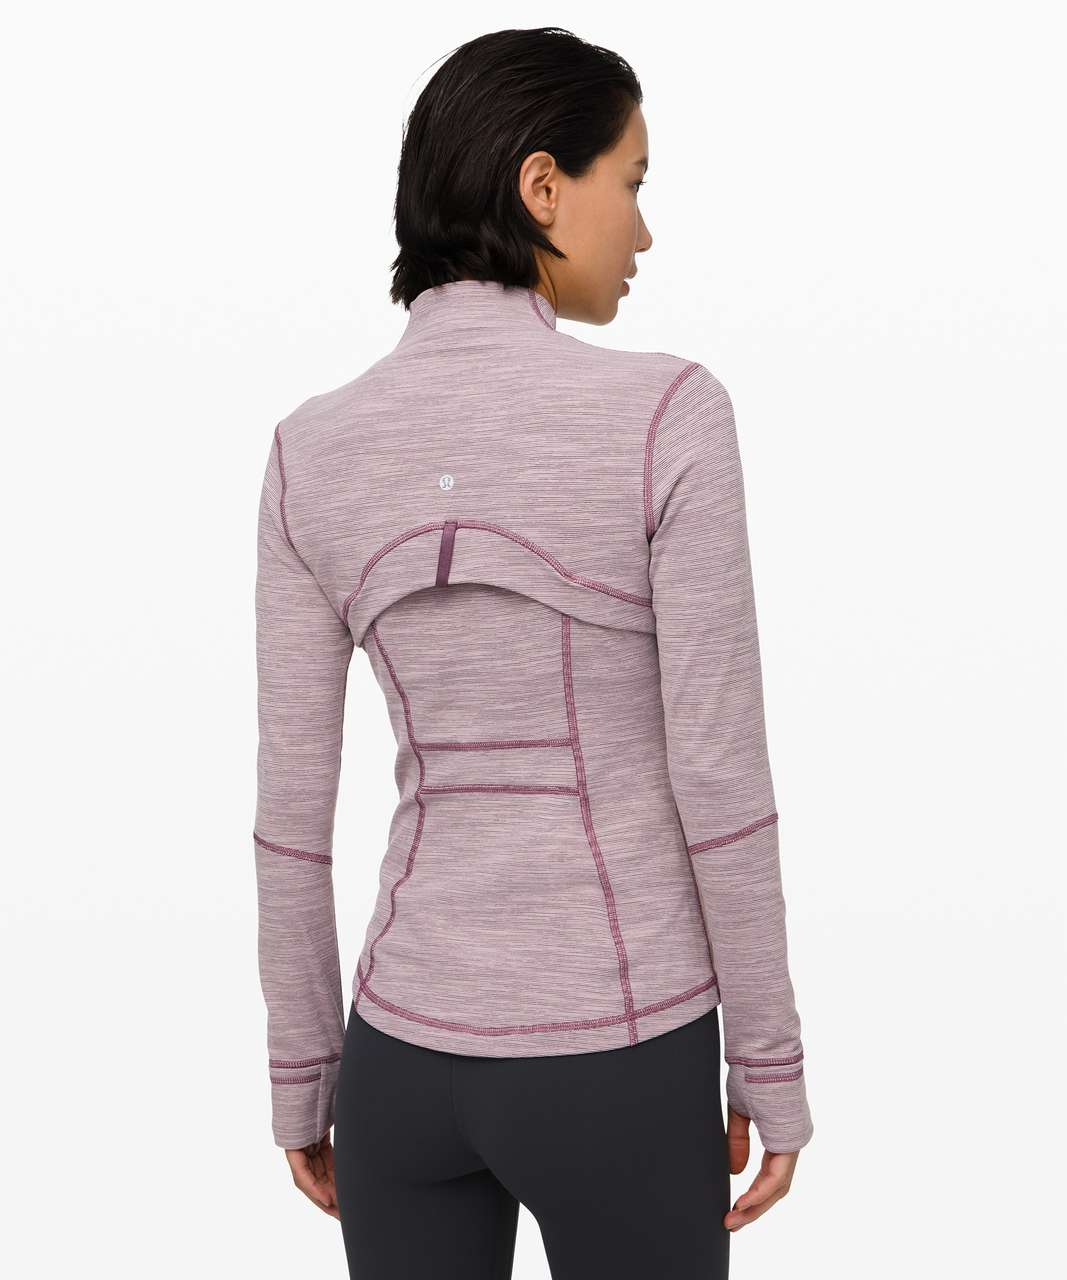 Lululemon Define Jacket - Wee Are From Space Frosted Mulberry Black Currant